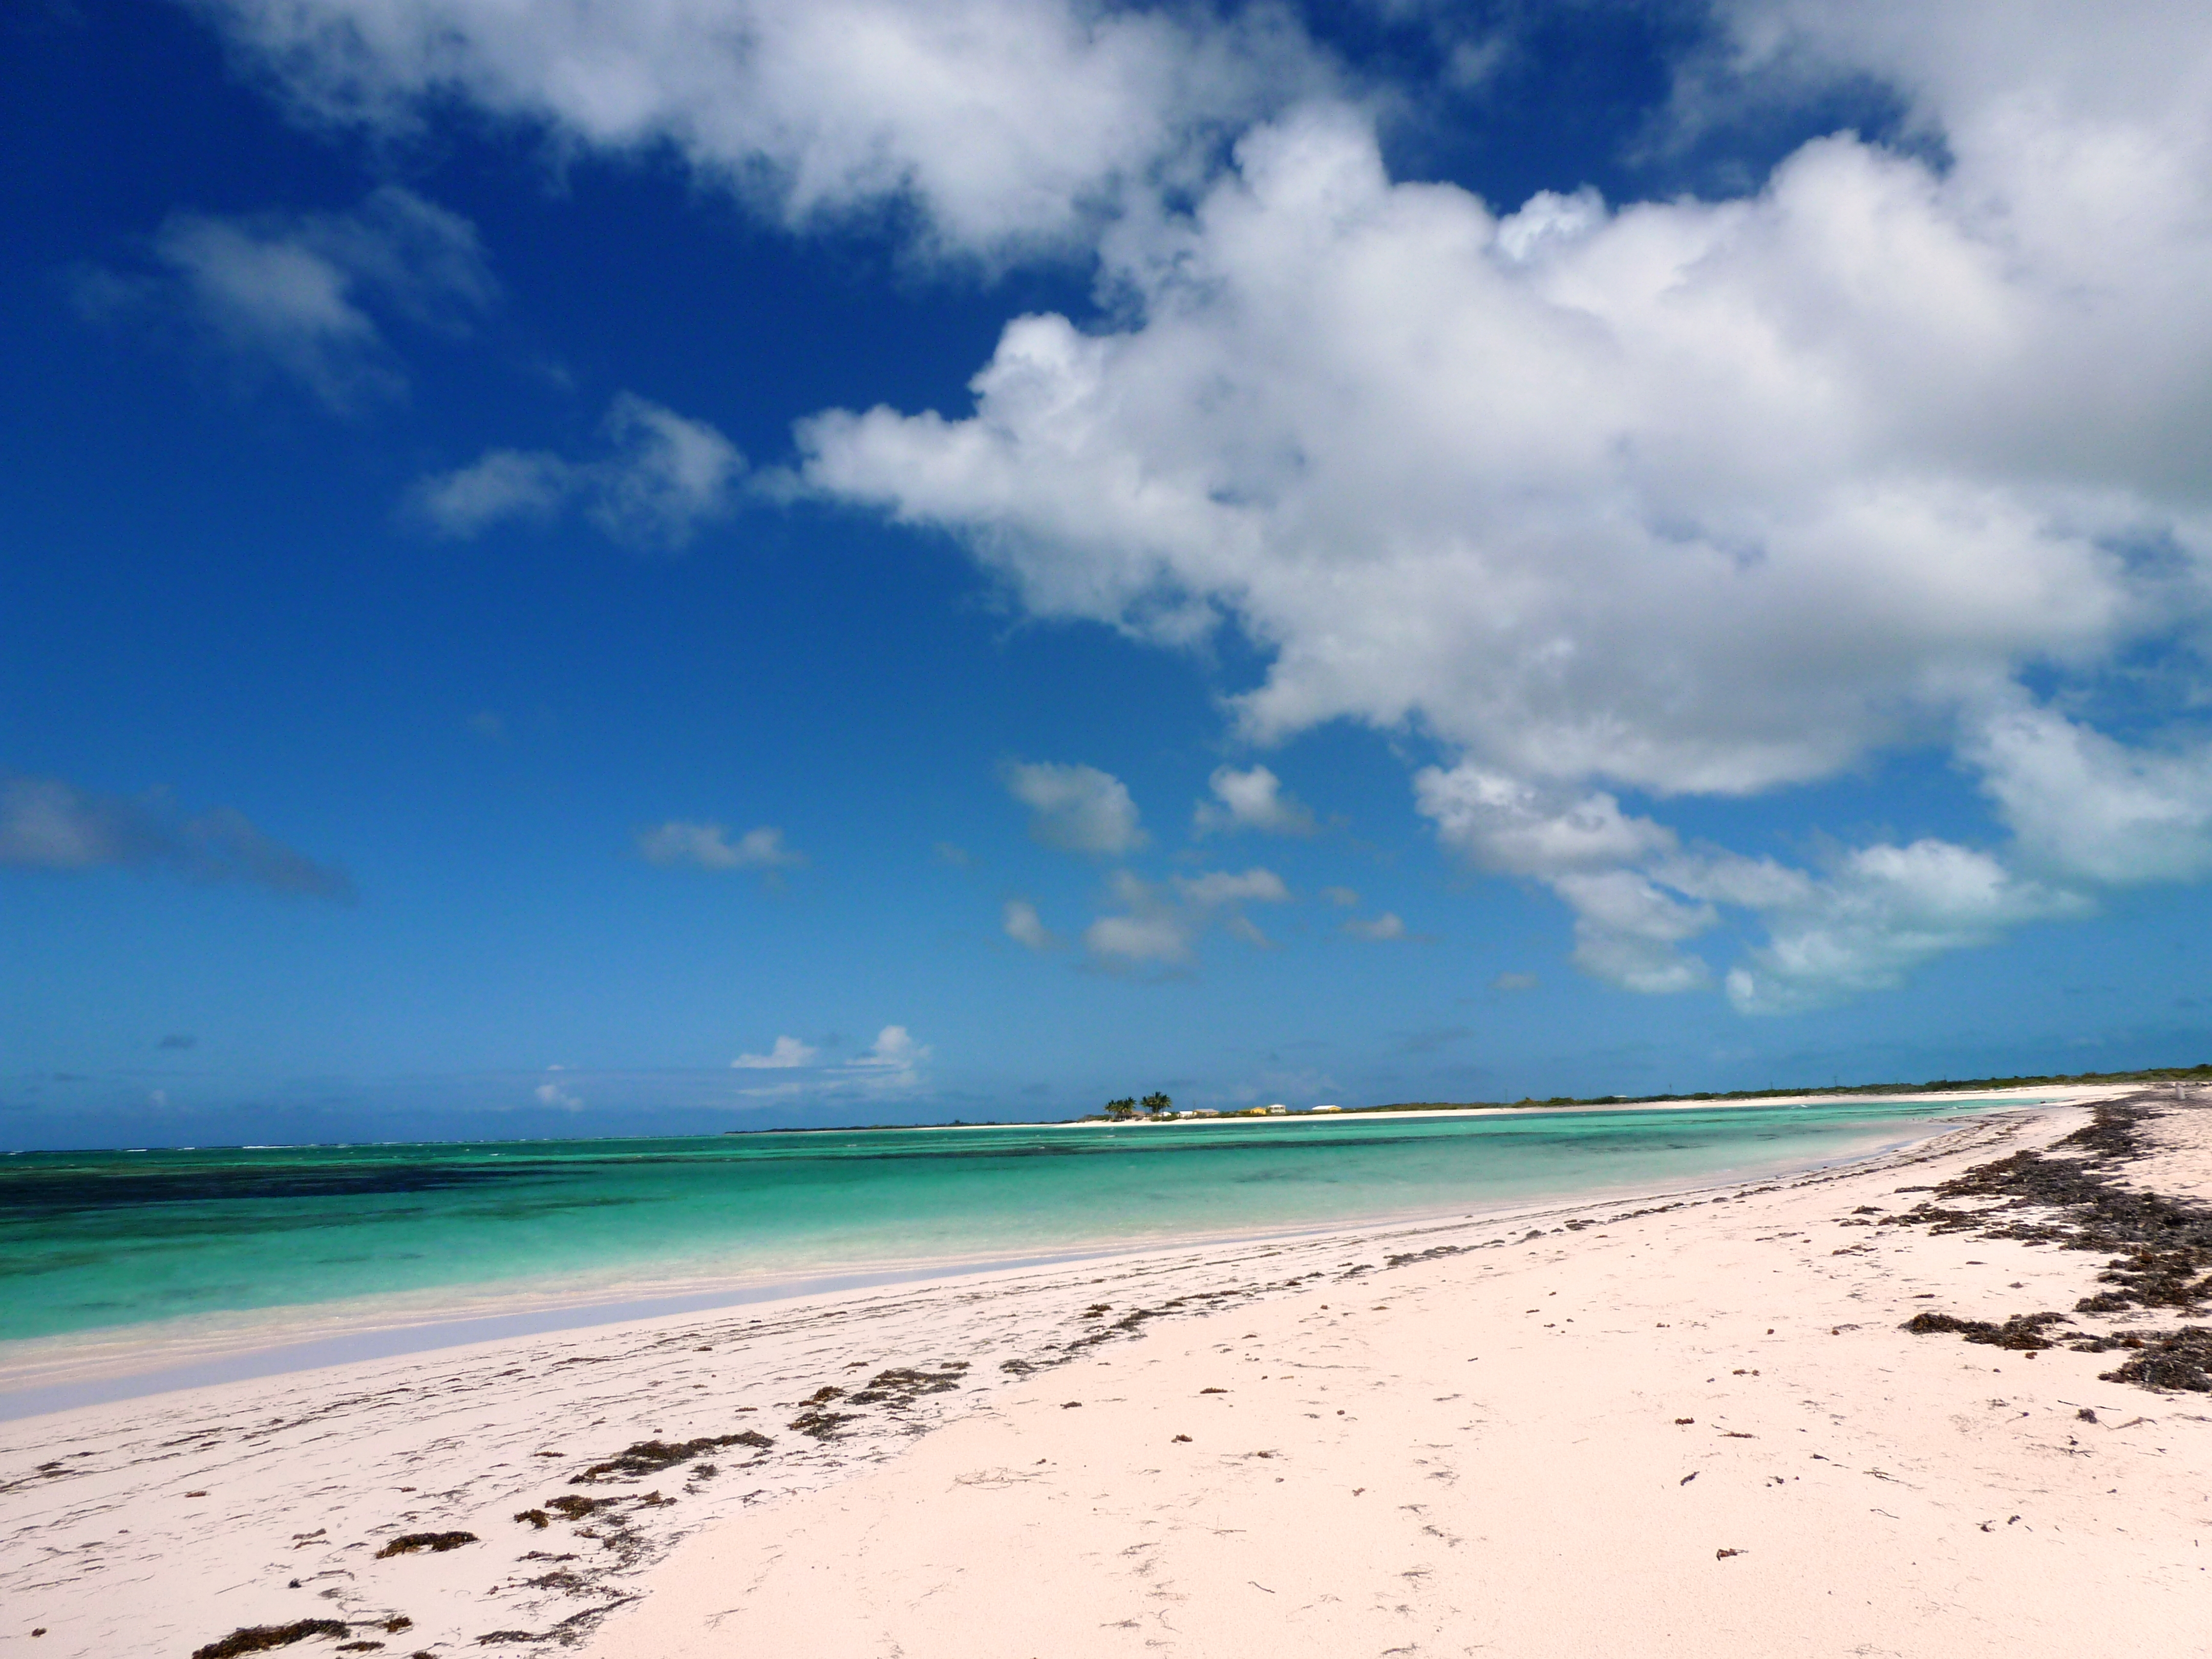 Anegada Loblolly Beach in the BVI